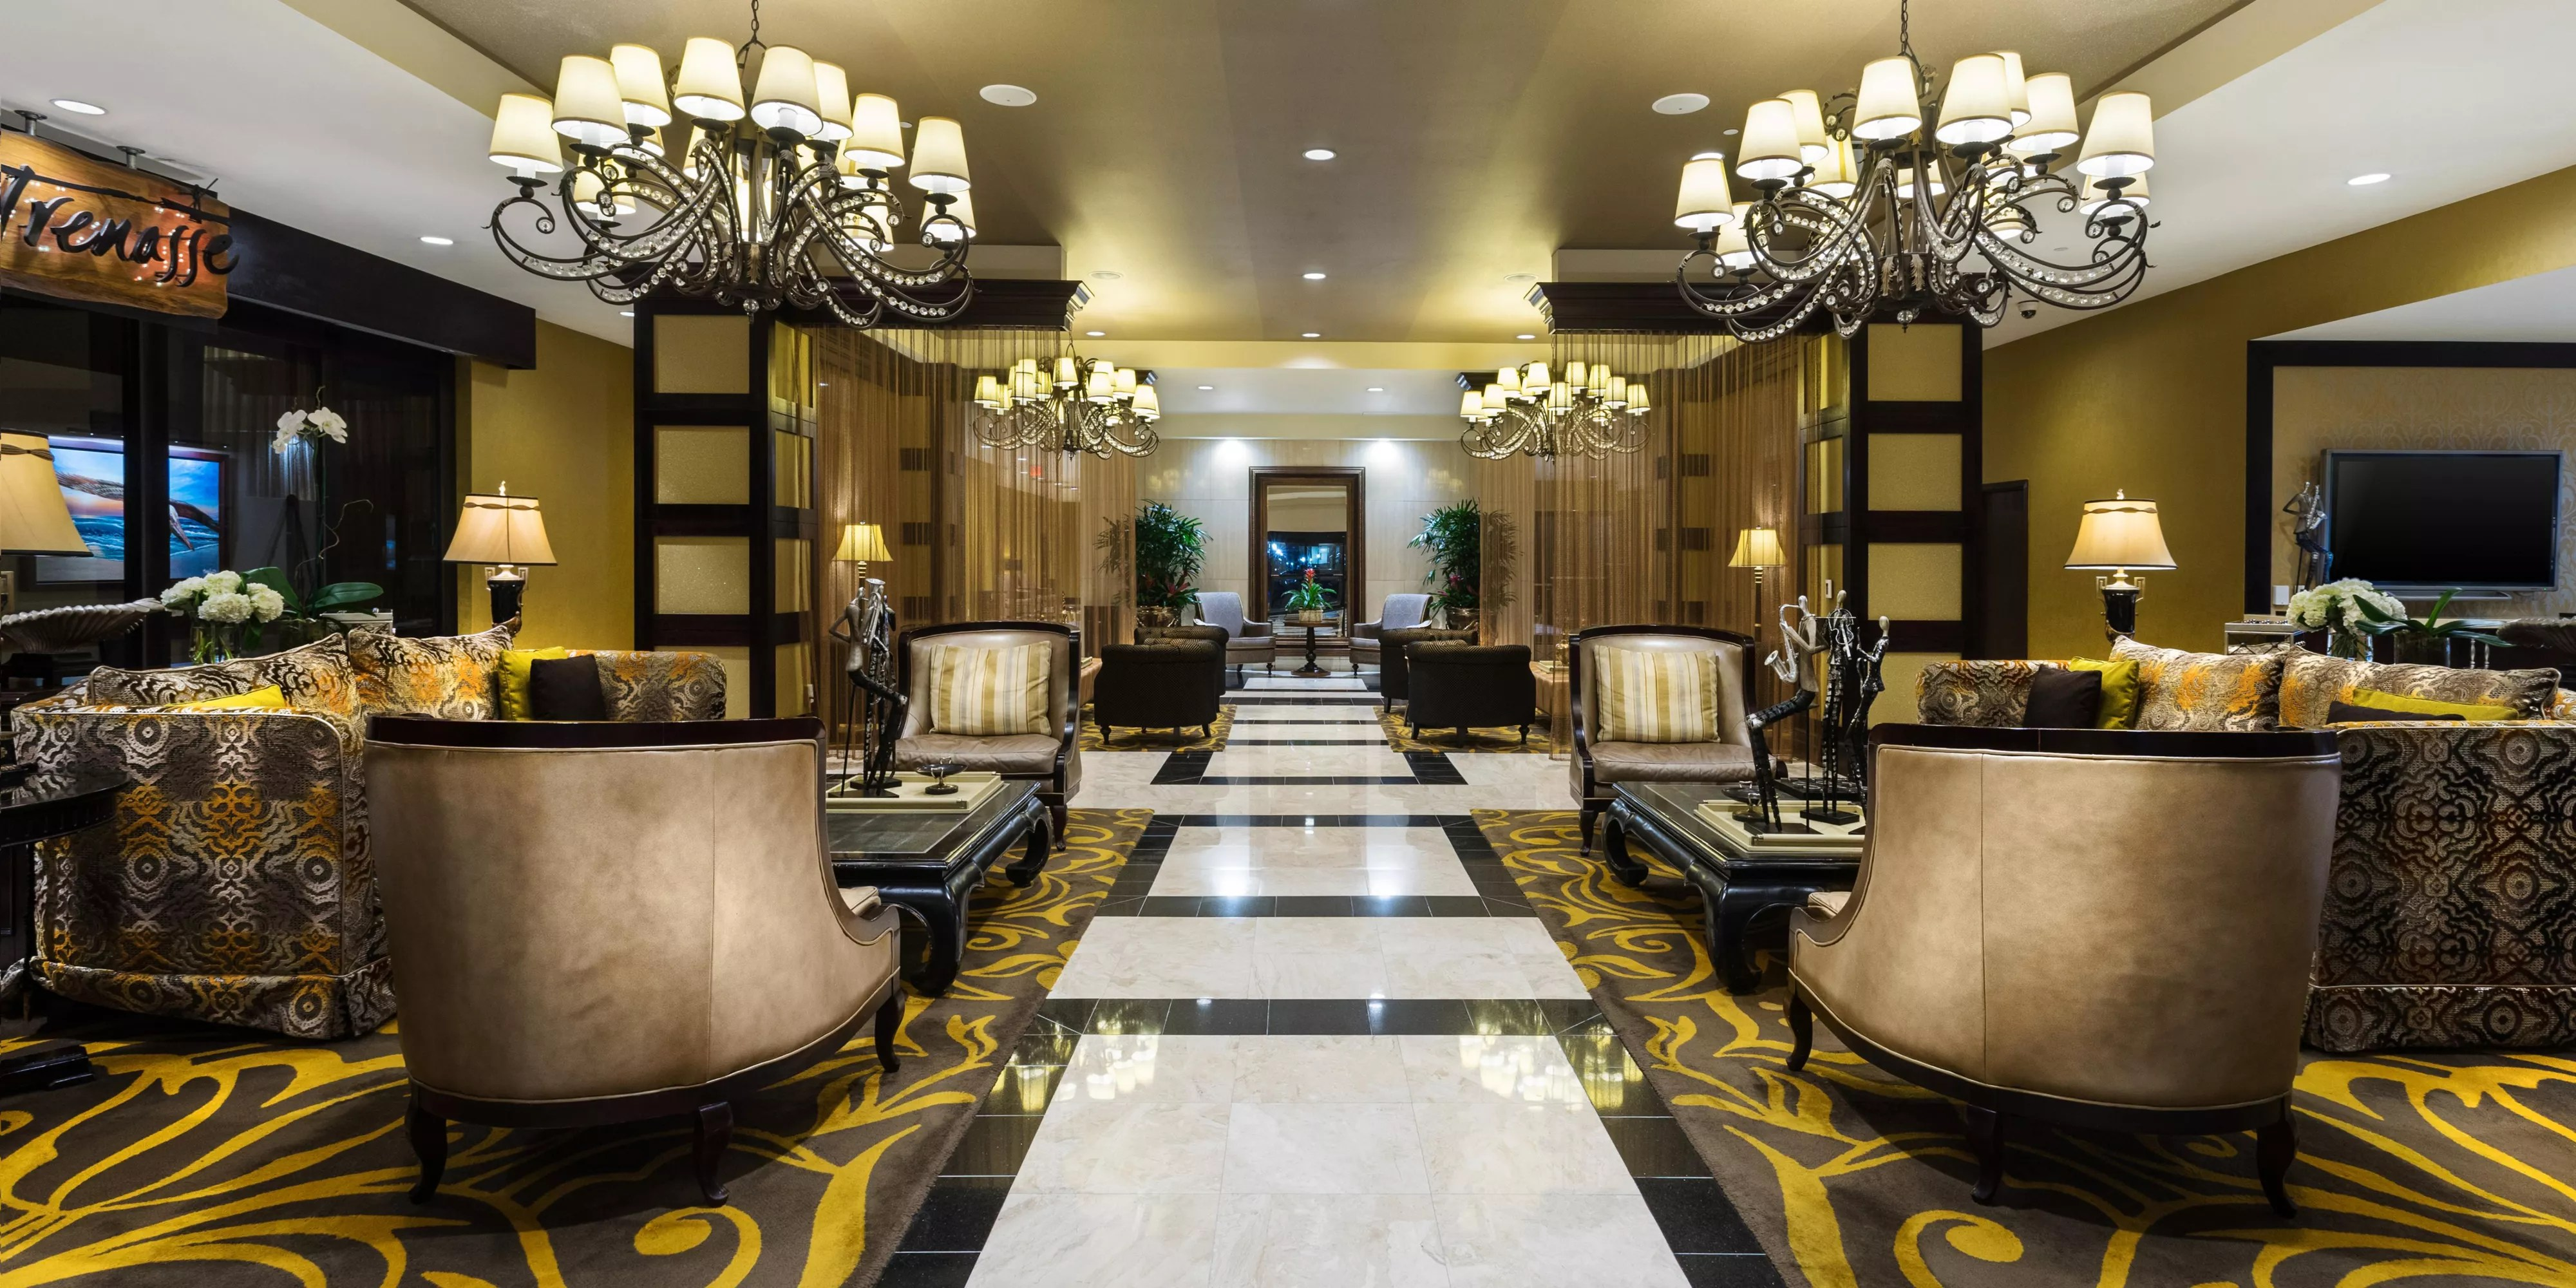 InterContinental New Orleans New Orleans Louisiana